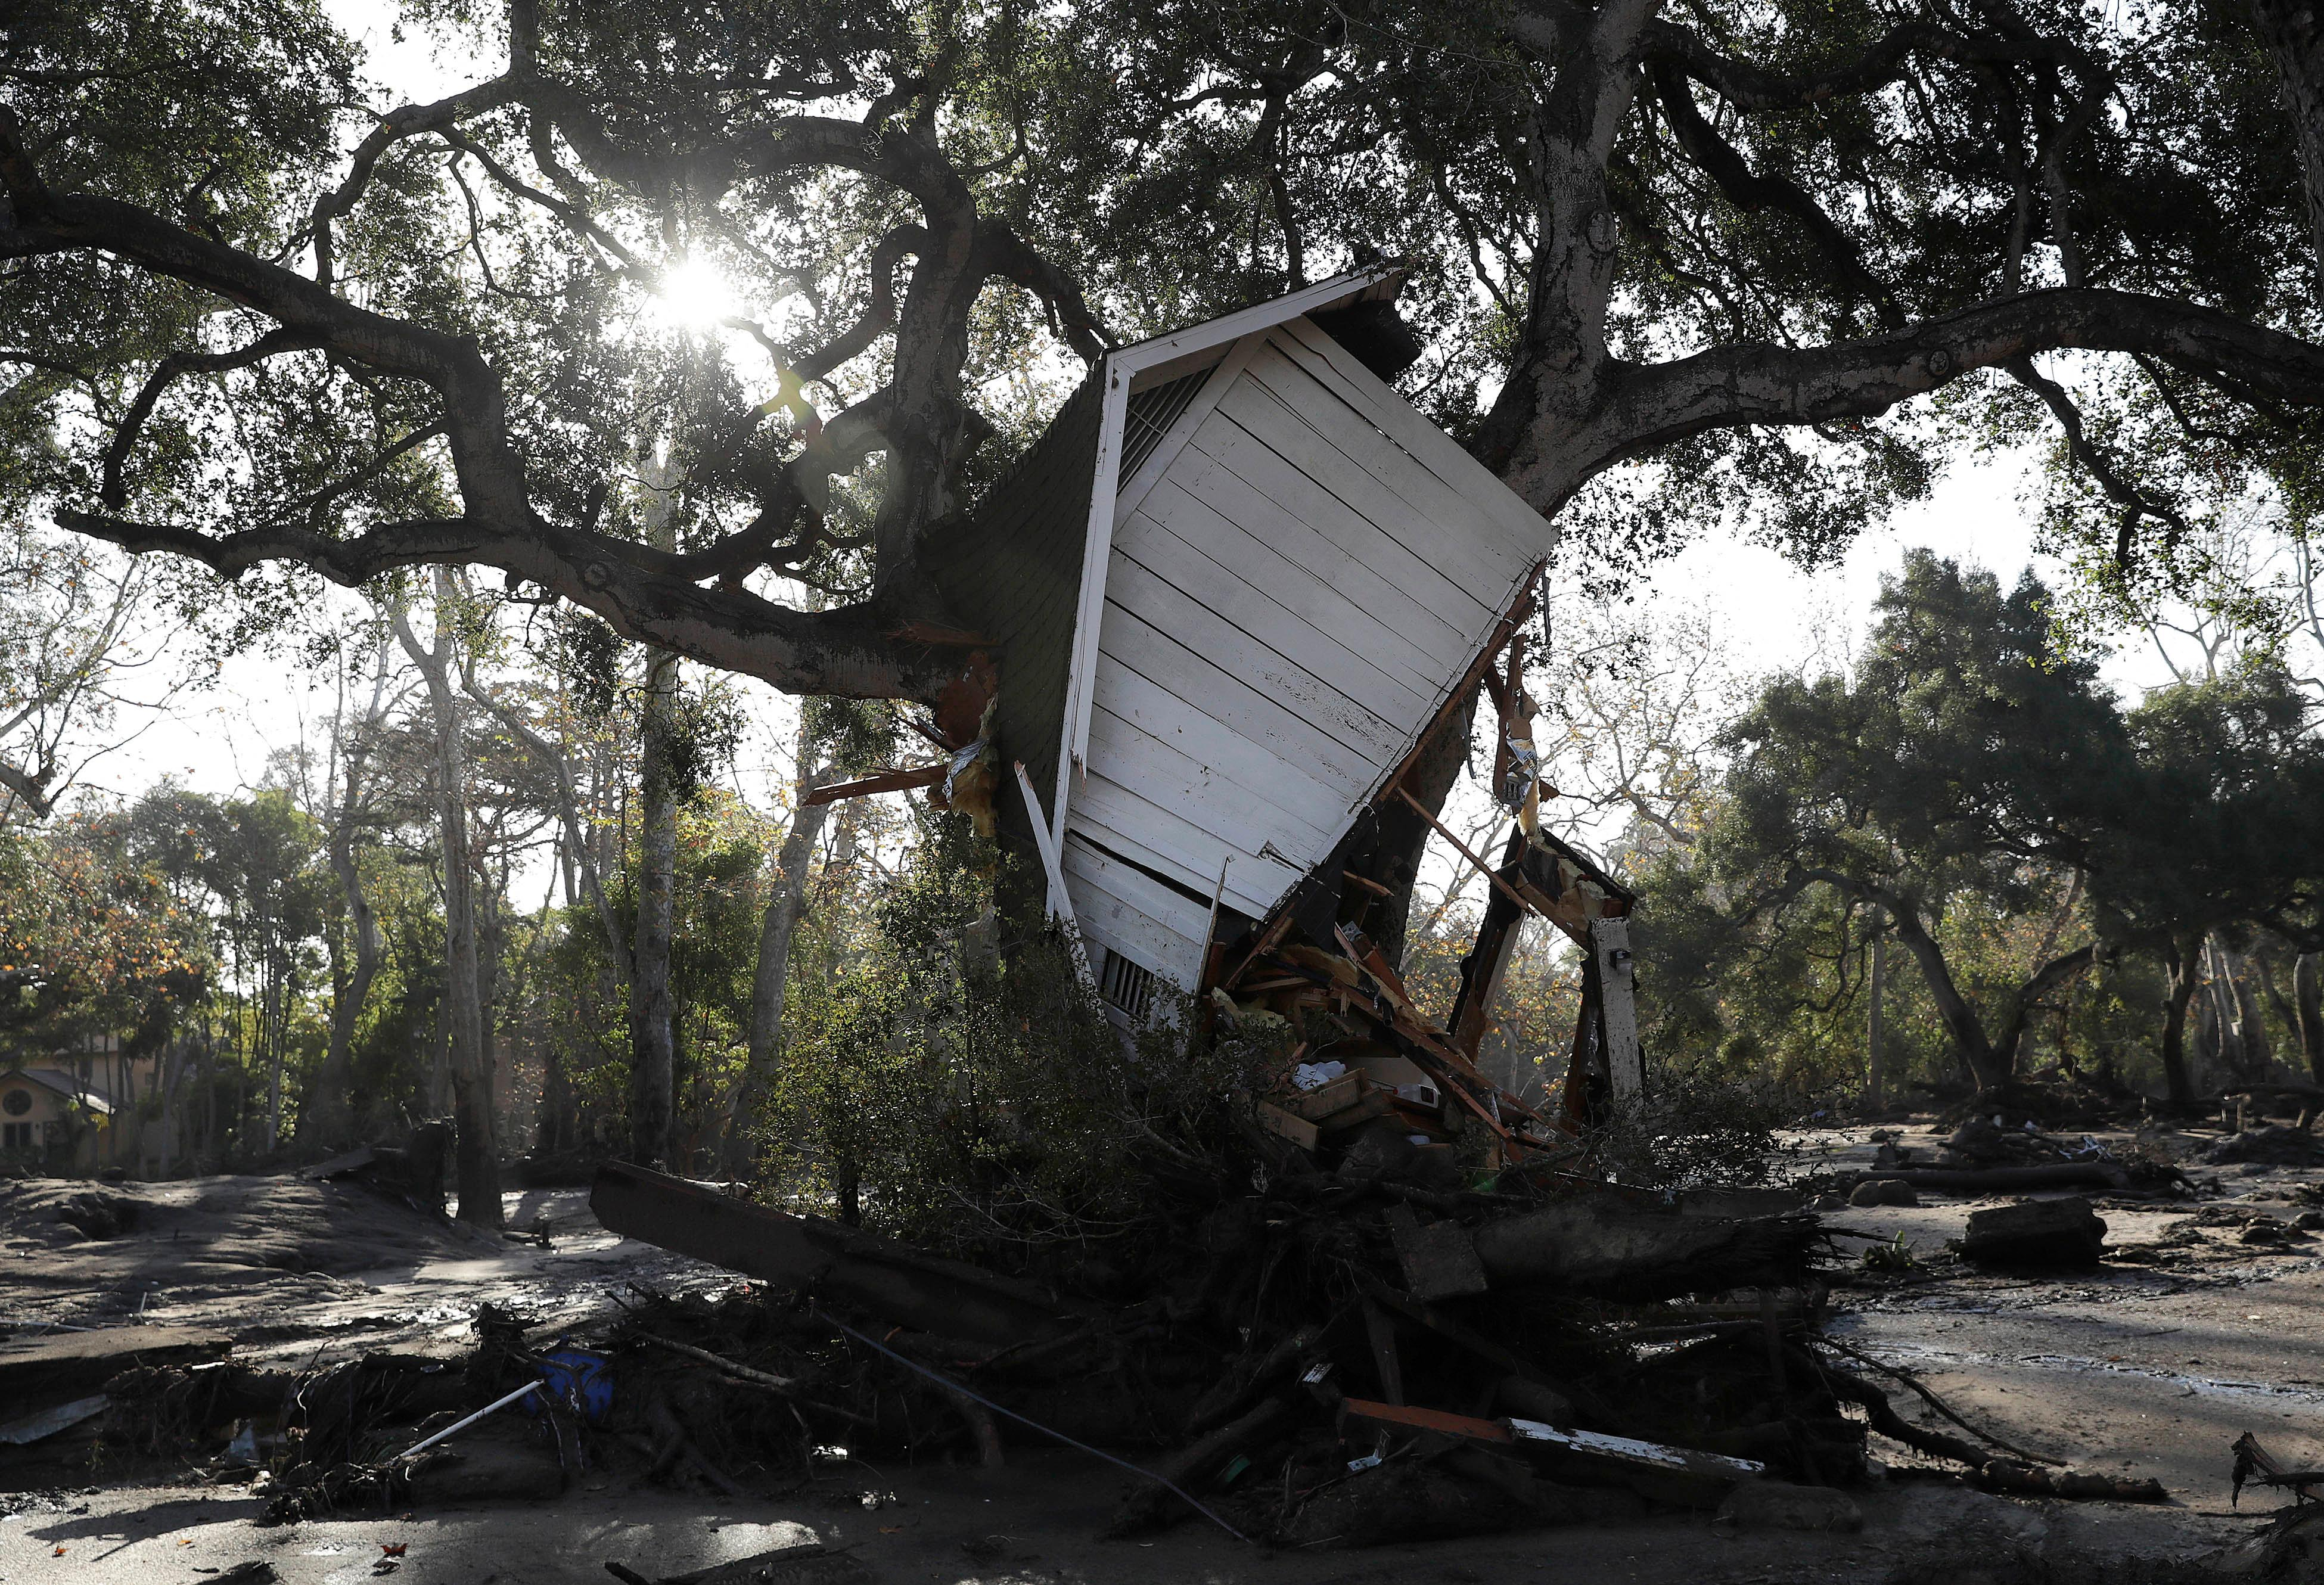 A structure damaged from storms is shown in Montecito, Calif., Thursday, Jan. 11, 2018.  Hundreds of rescue workers slogged through knee-deep ooze and used long poles to probe for bodies Thursday as the search dragged on for victims of the mudslides that slammed this wealthy coastal town. (AP Photo/Marcio Jose Sanchez)